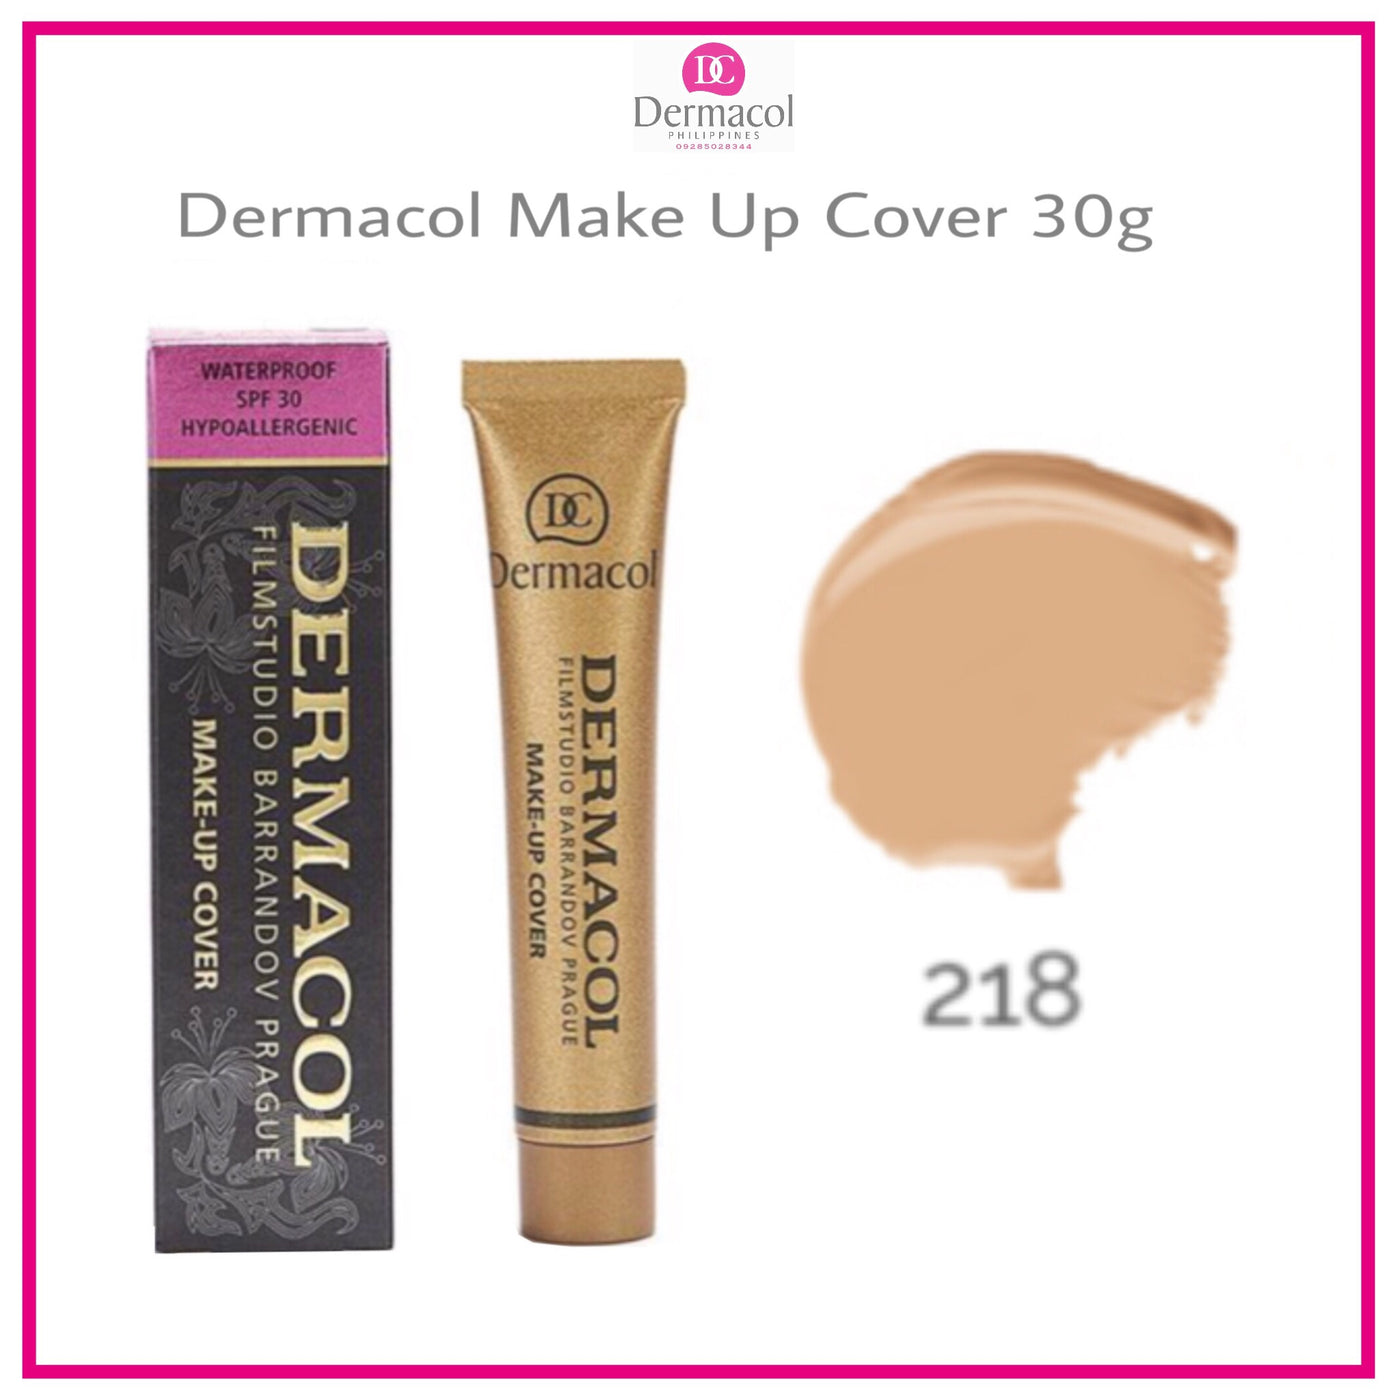 Make Up Cover Shade 218 Dermacol Philippines